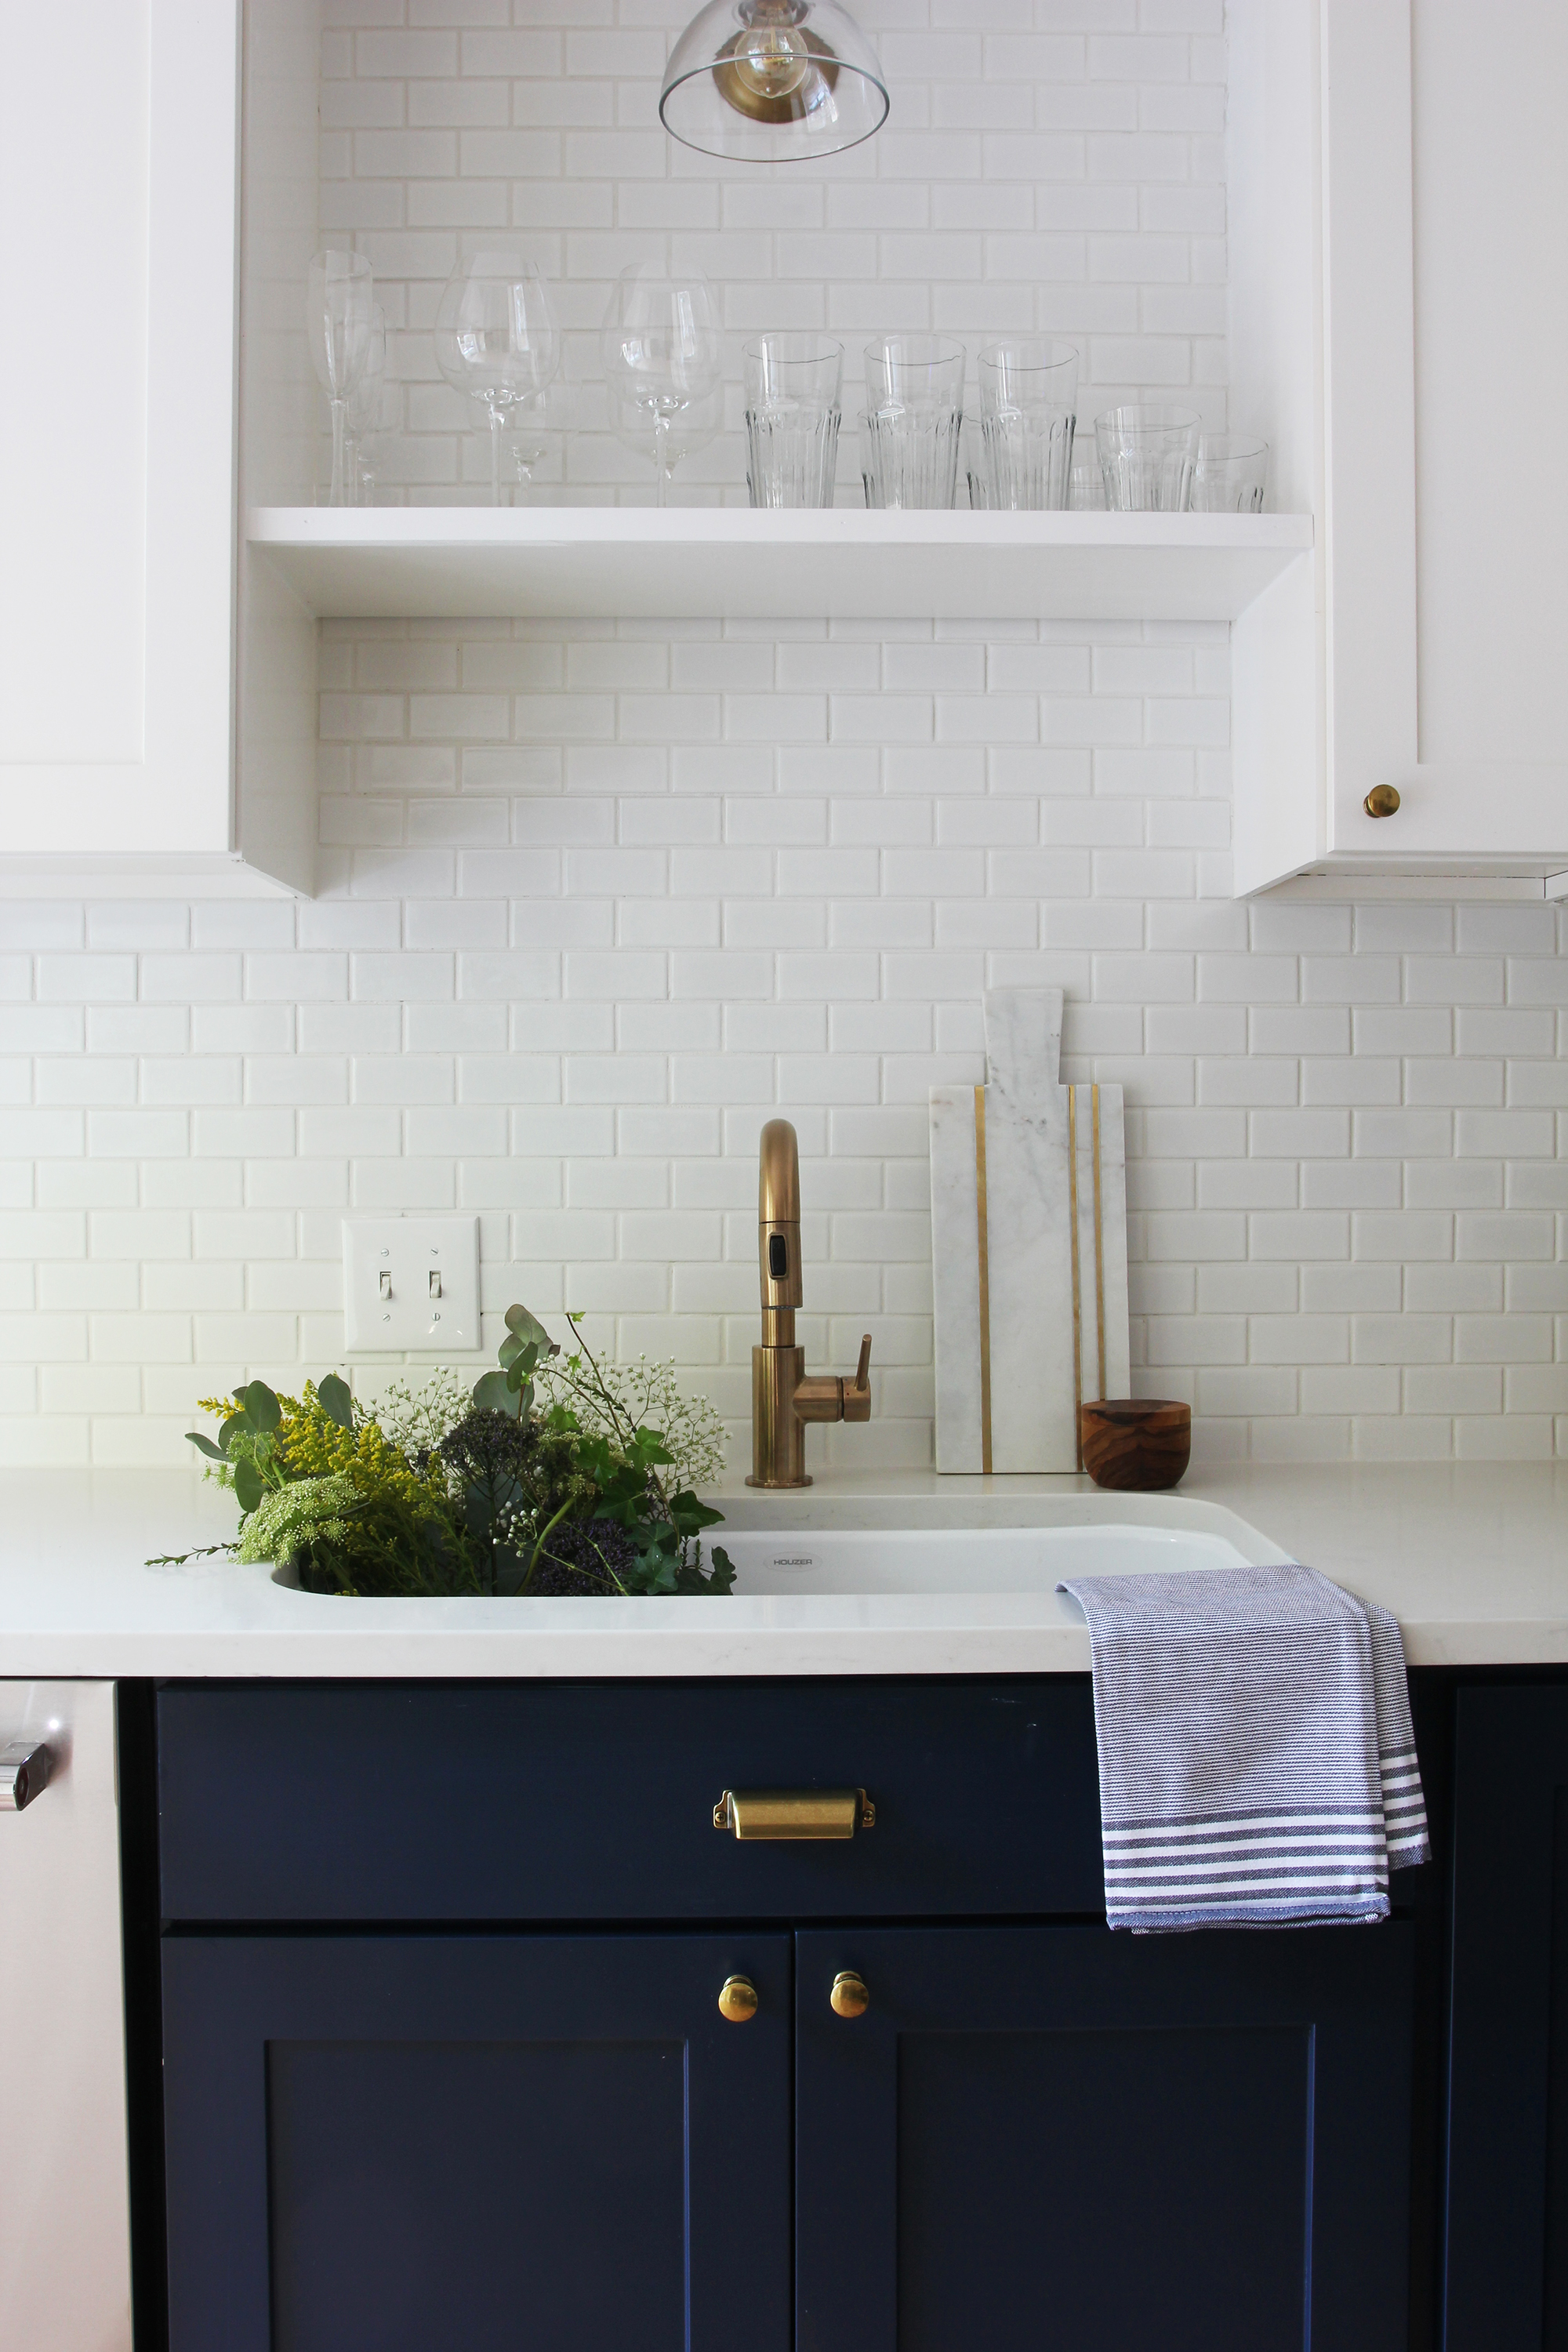 the-grit-and-polish-6-day-kitchen-sink-close